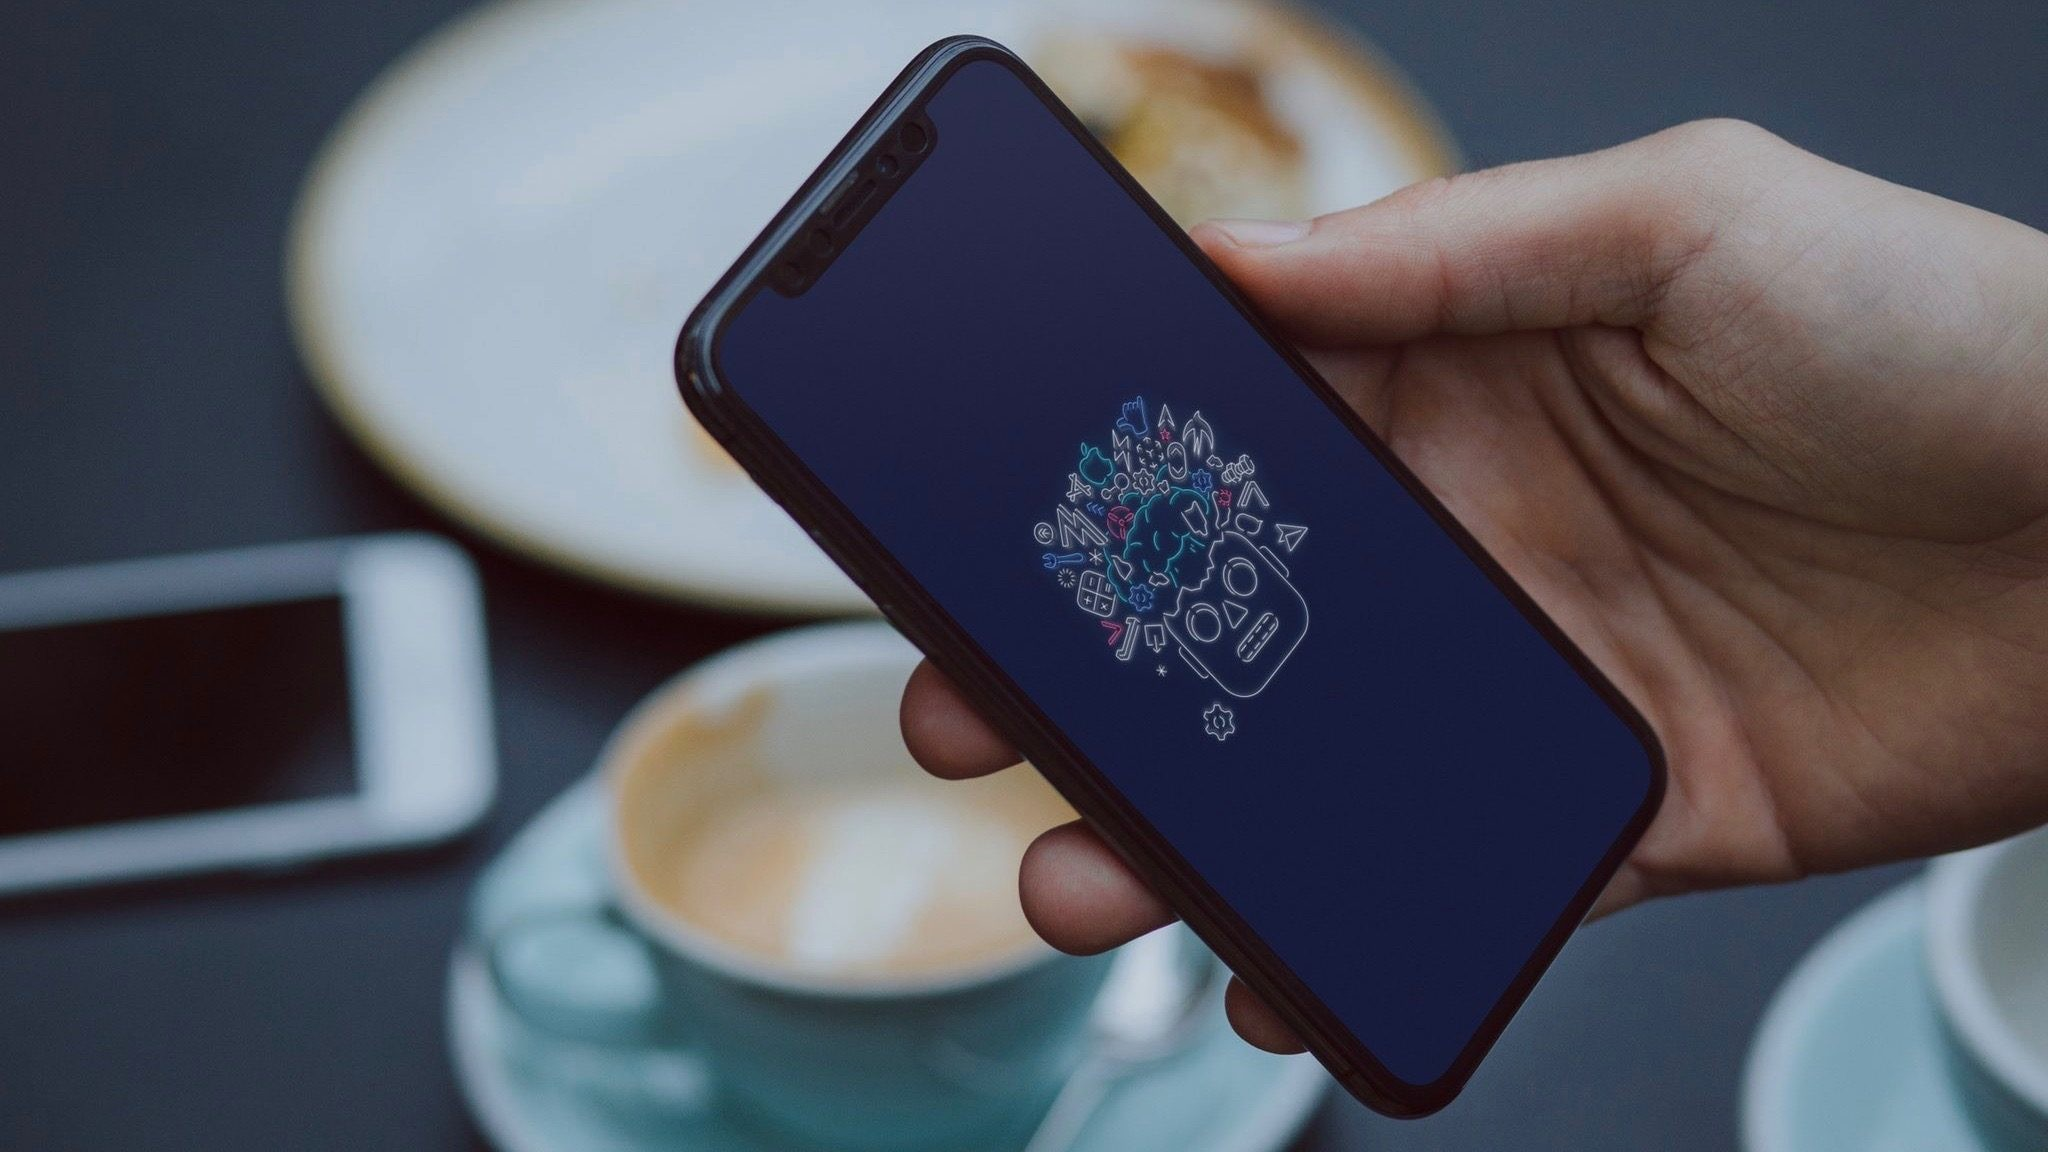 Res: 2048x1152, Get ready for WWDC 2019 with these iPhone, iPad, and Mac wallpapers  inspired by Apple's graphics